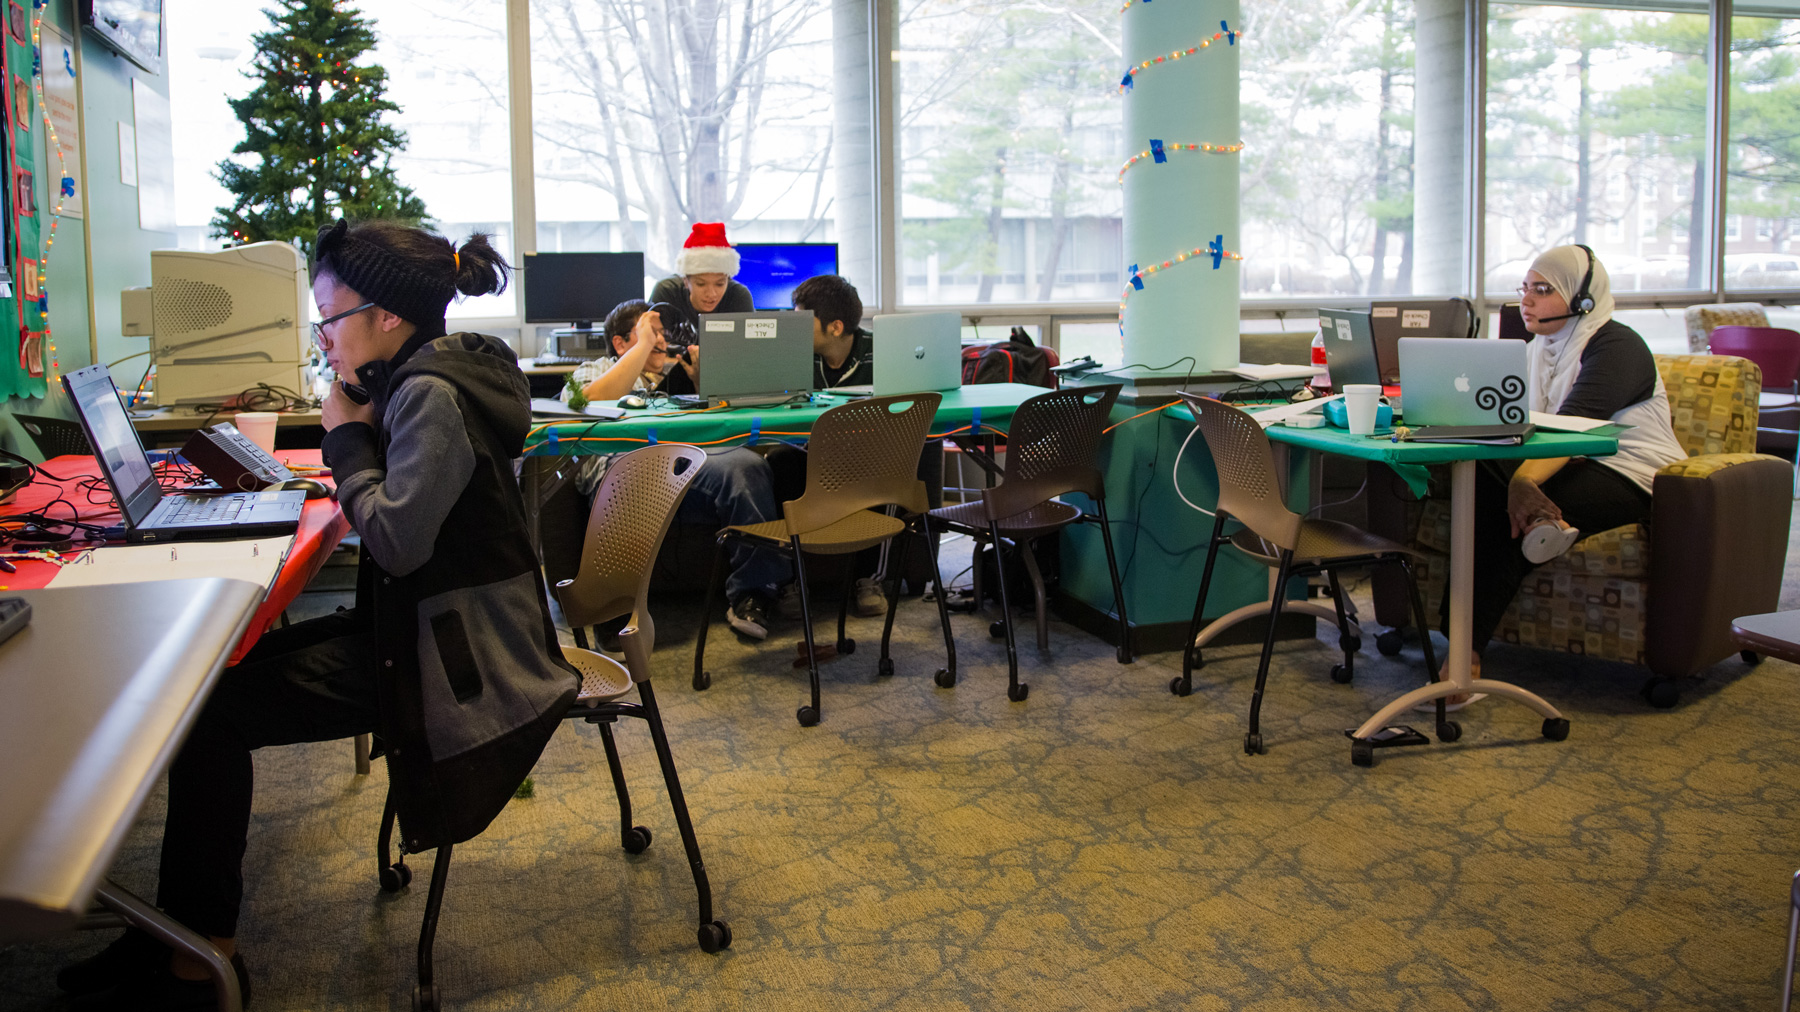 image of students working the dial-a-carol phone lines